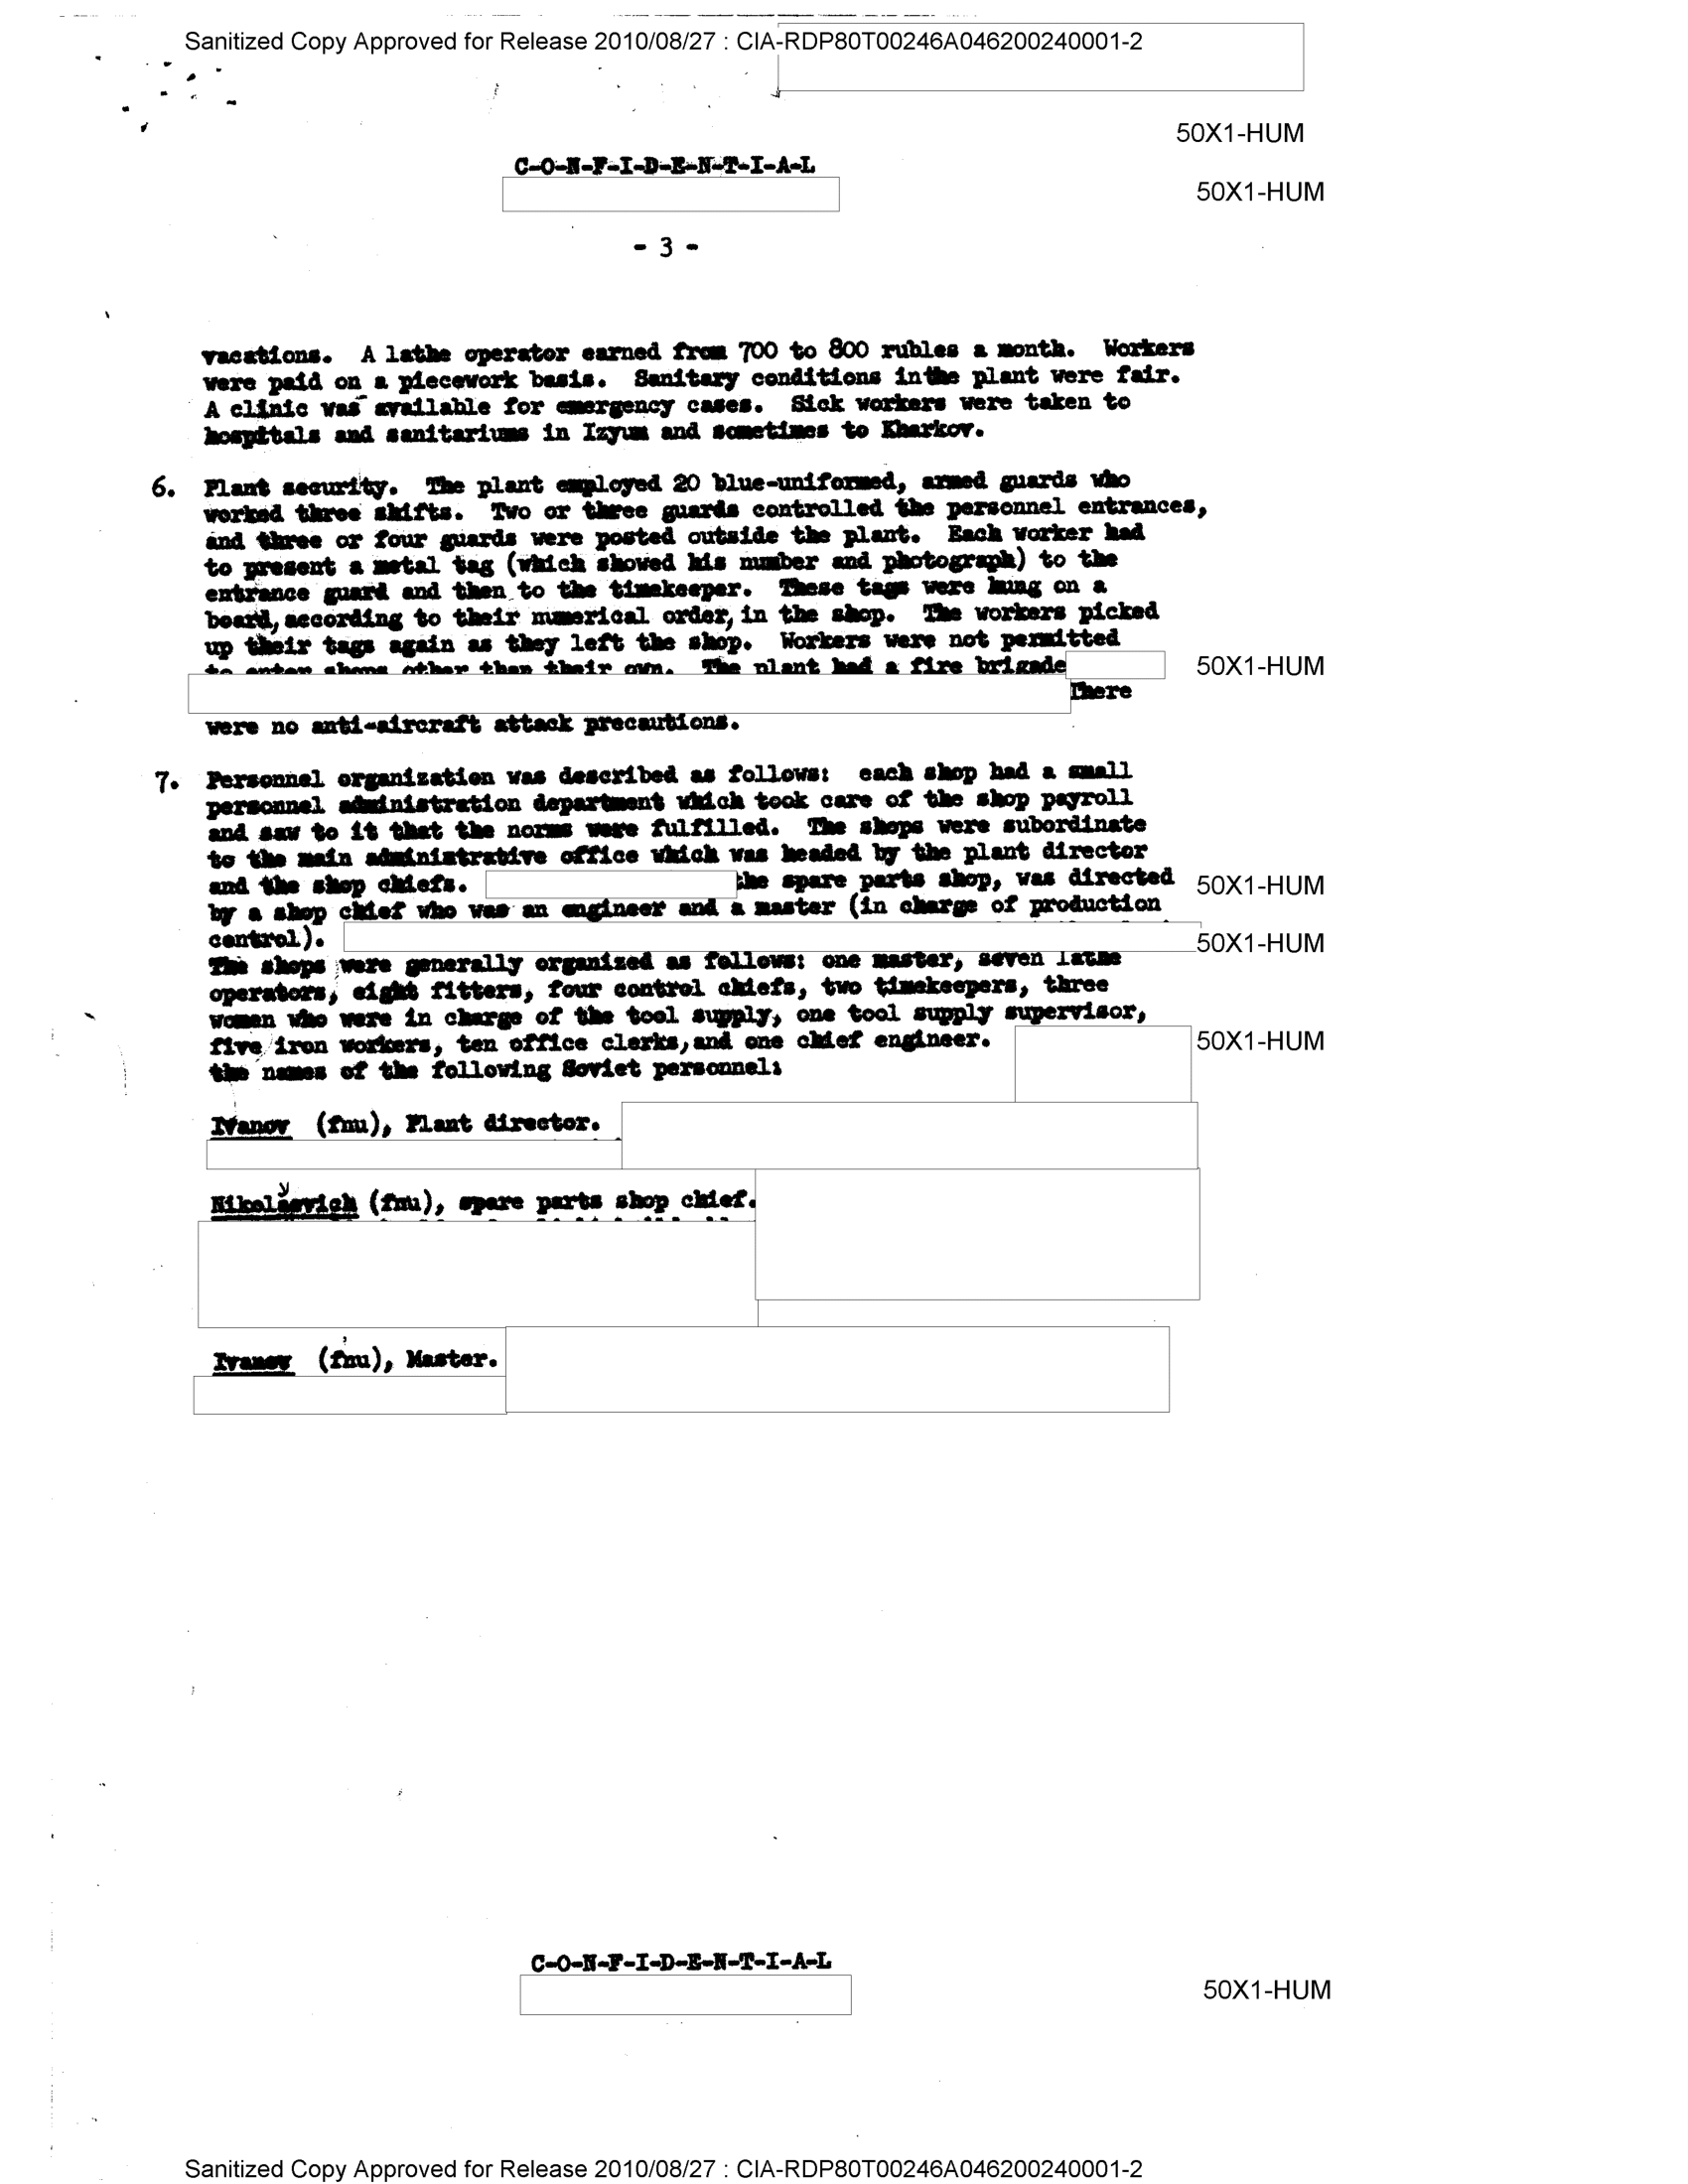 CIA-RDP80T00246A046200240001-2-03.png